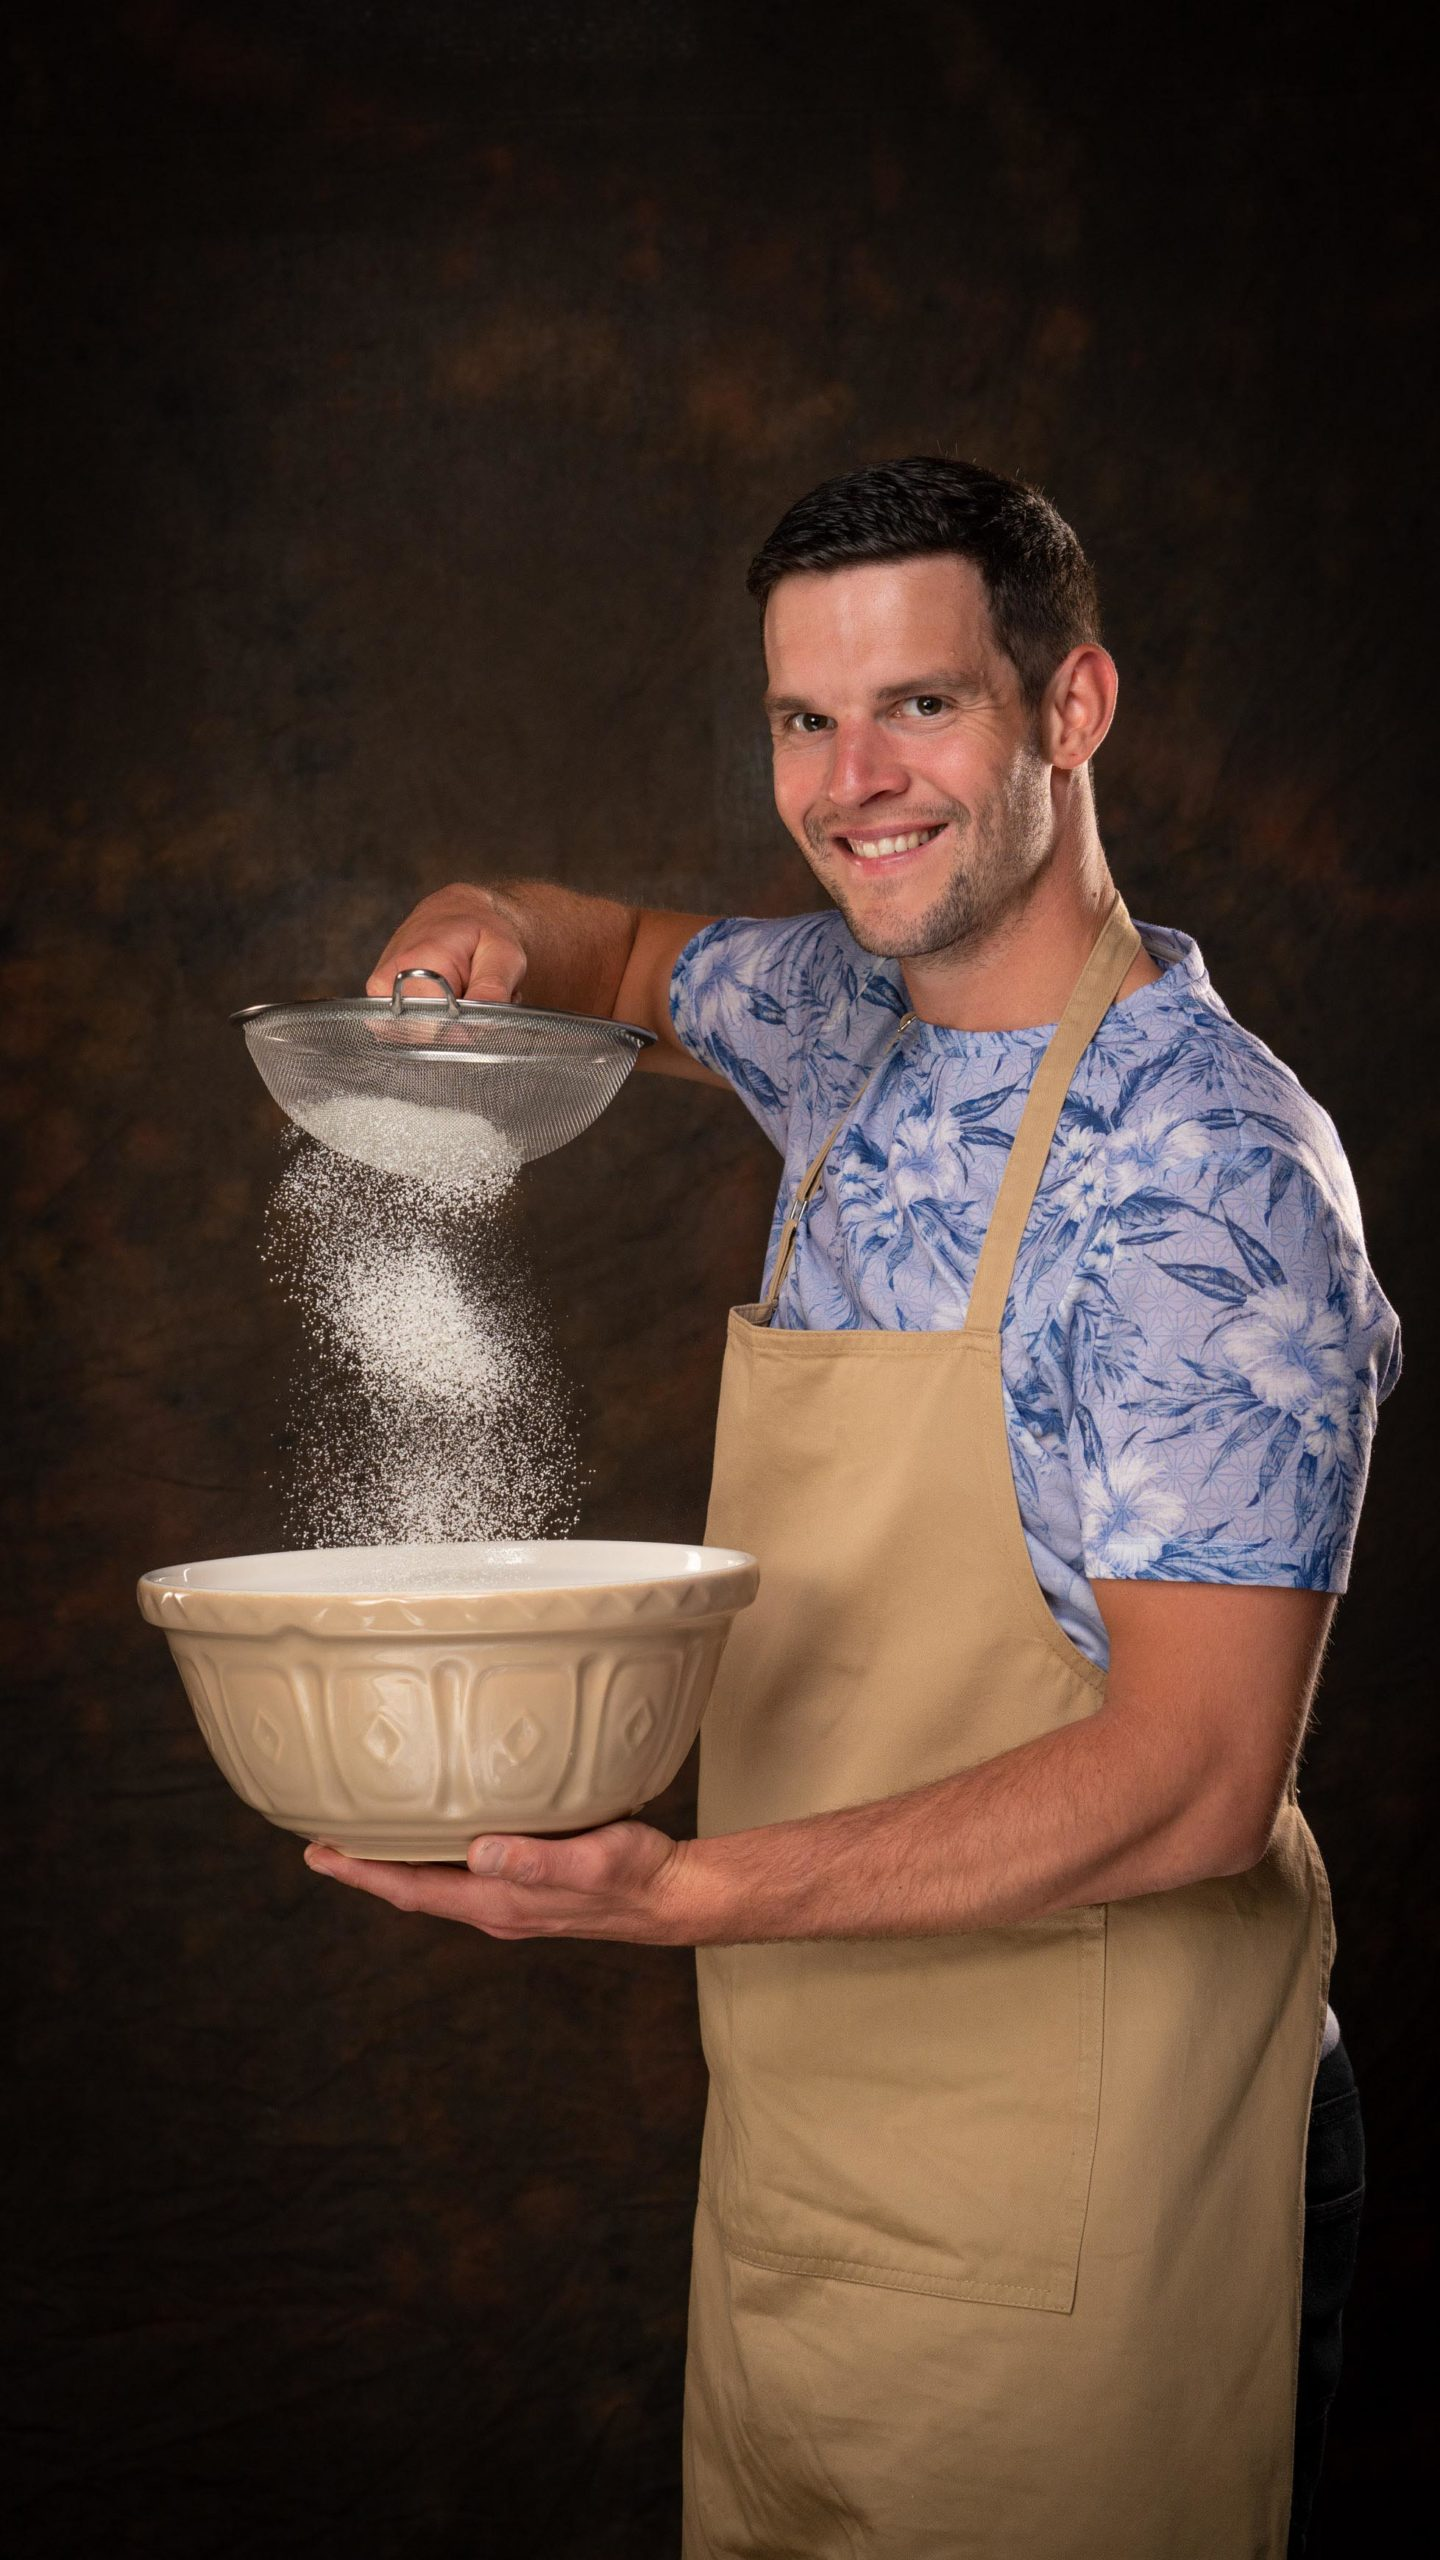 Dave is taking part in Bake Off